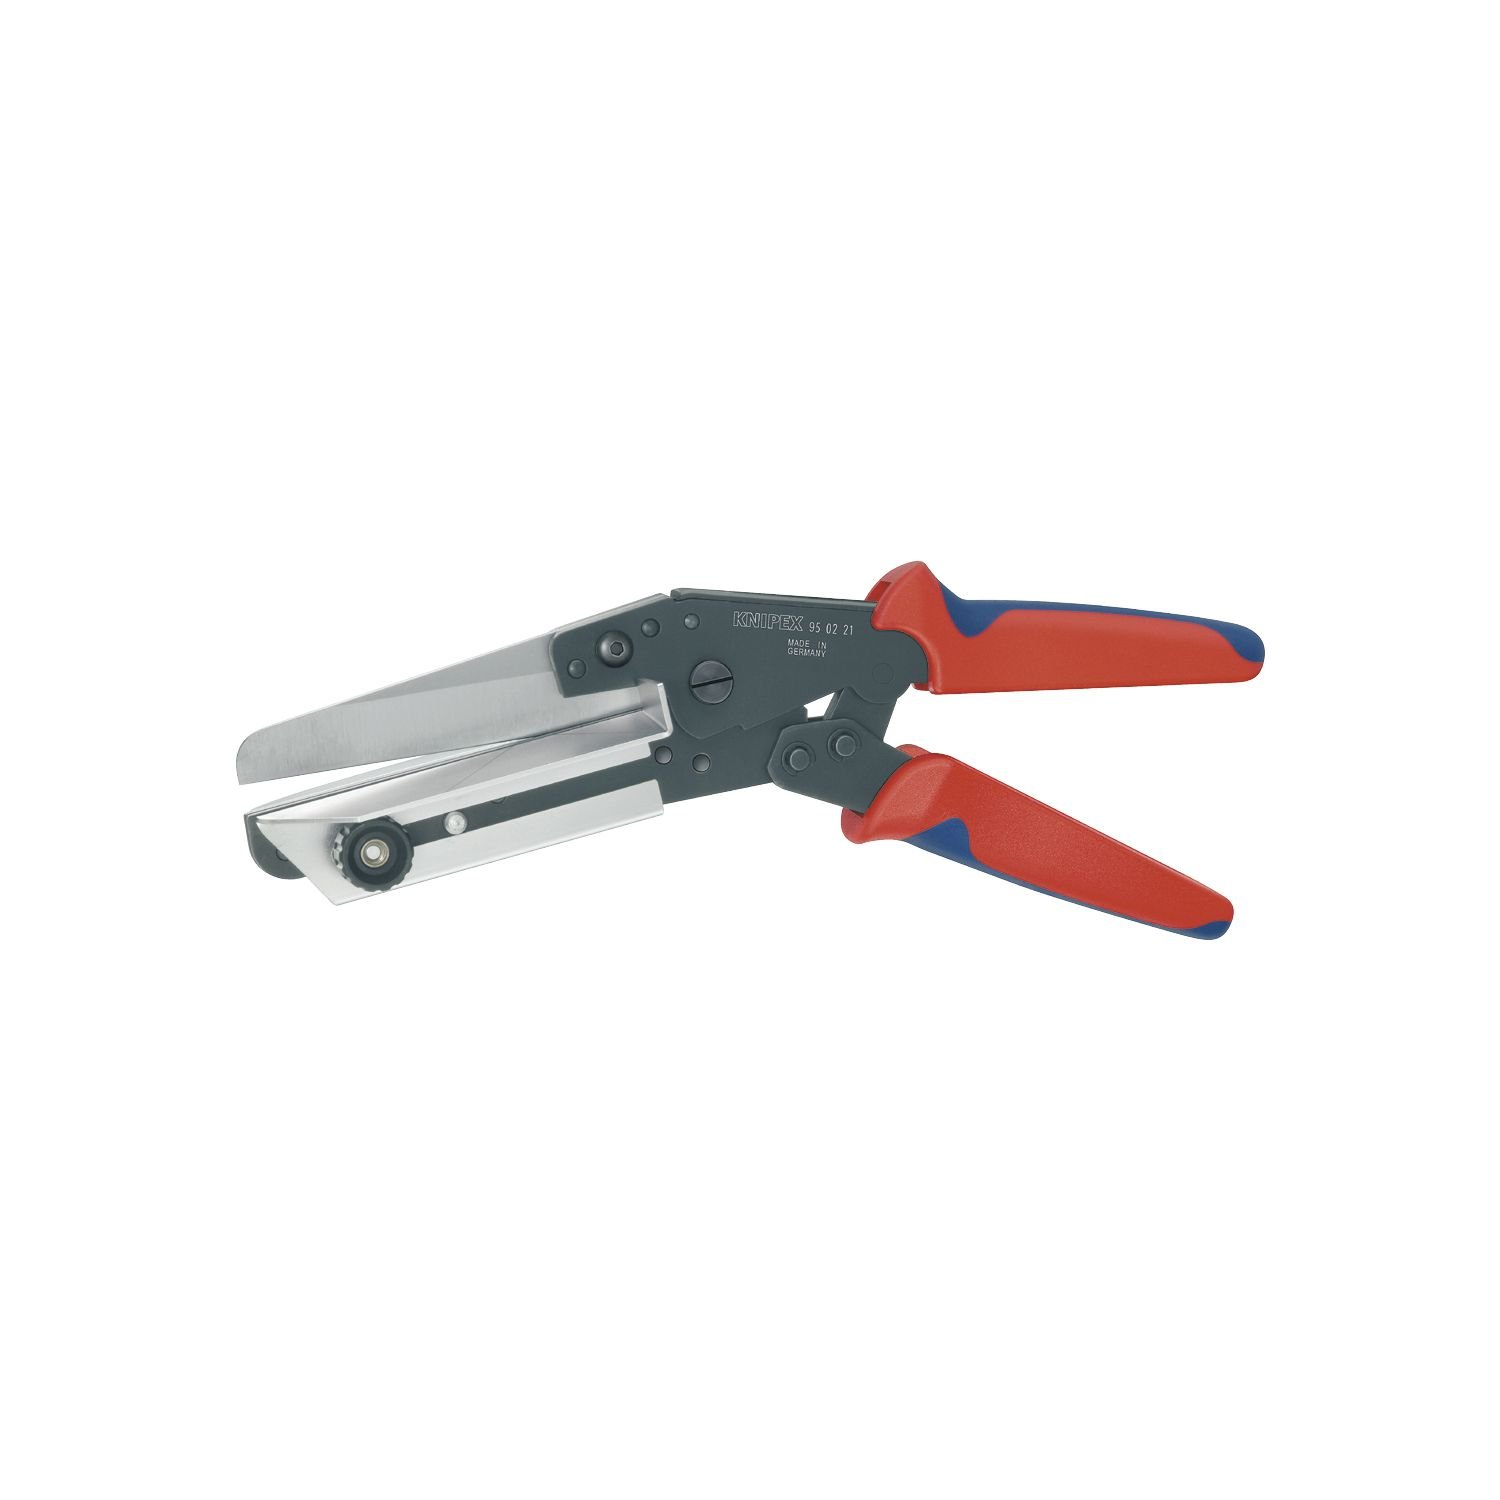 Knipex 95 02 21 Shears for Vinyl and cable ducts by KNIPEX Tools